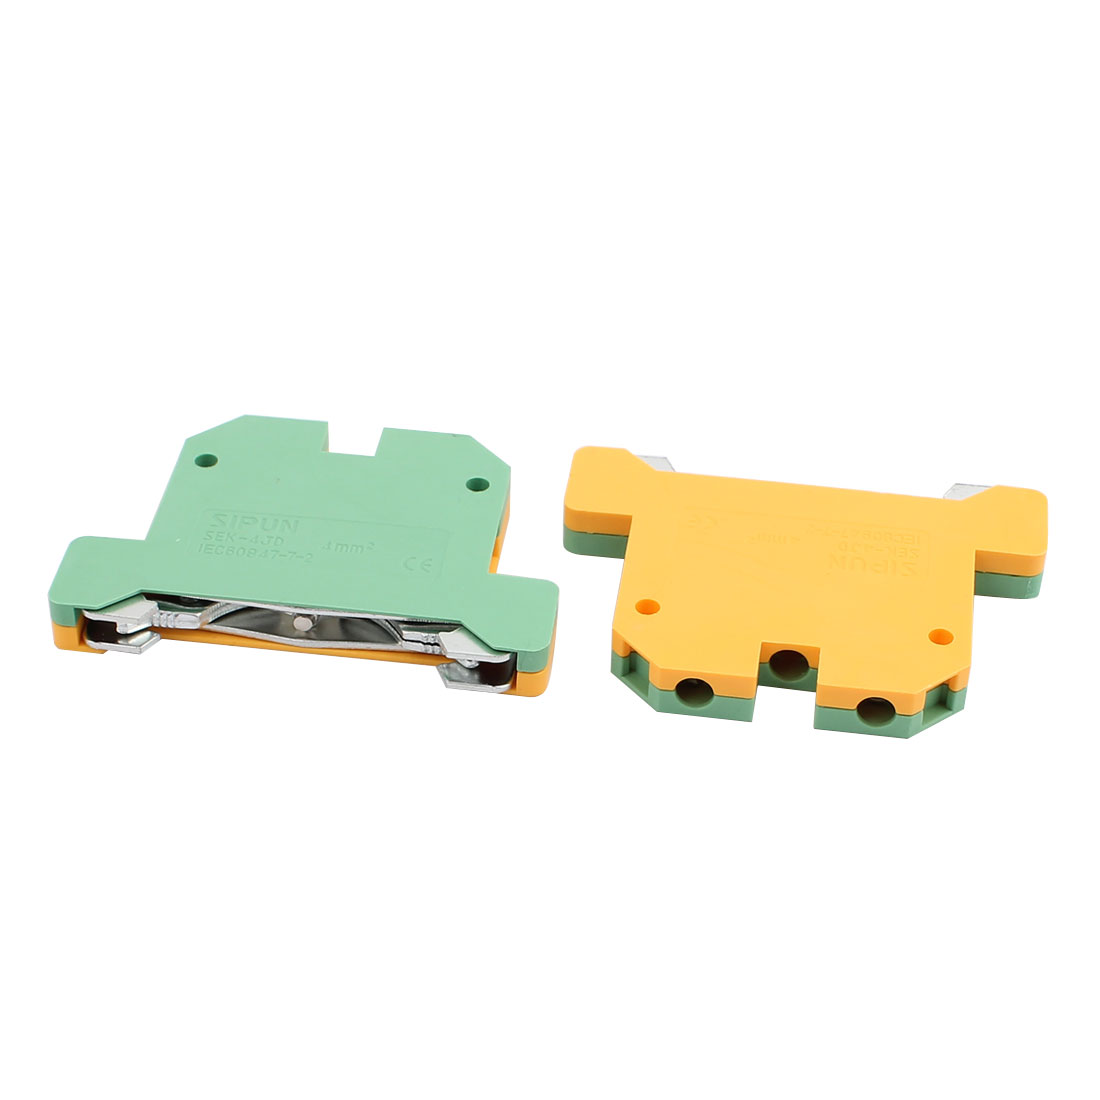 2Pcs SEK-4JD Rail Mount 4mm2 Cable Grounding Type Terminal Blocks Green Yellow